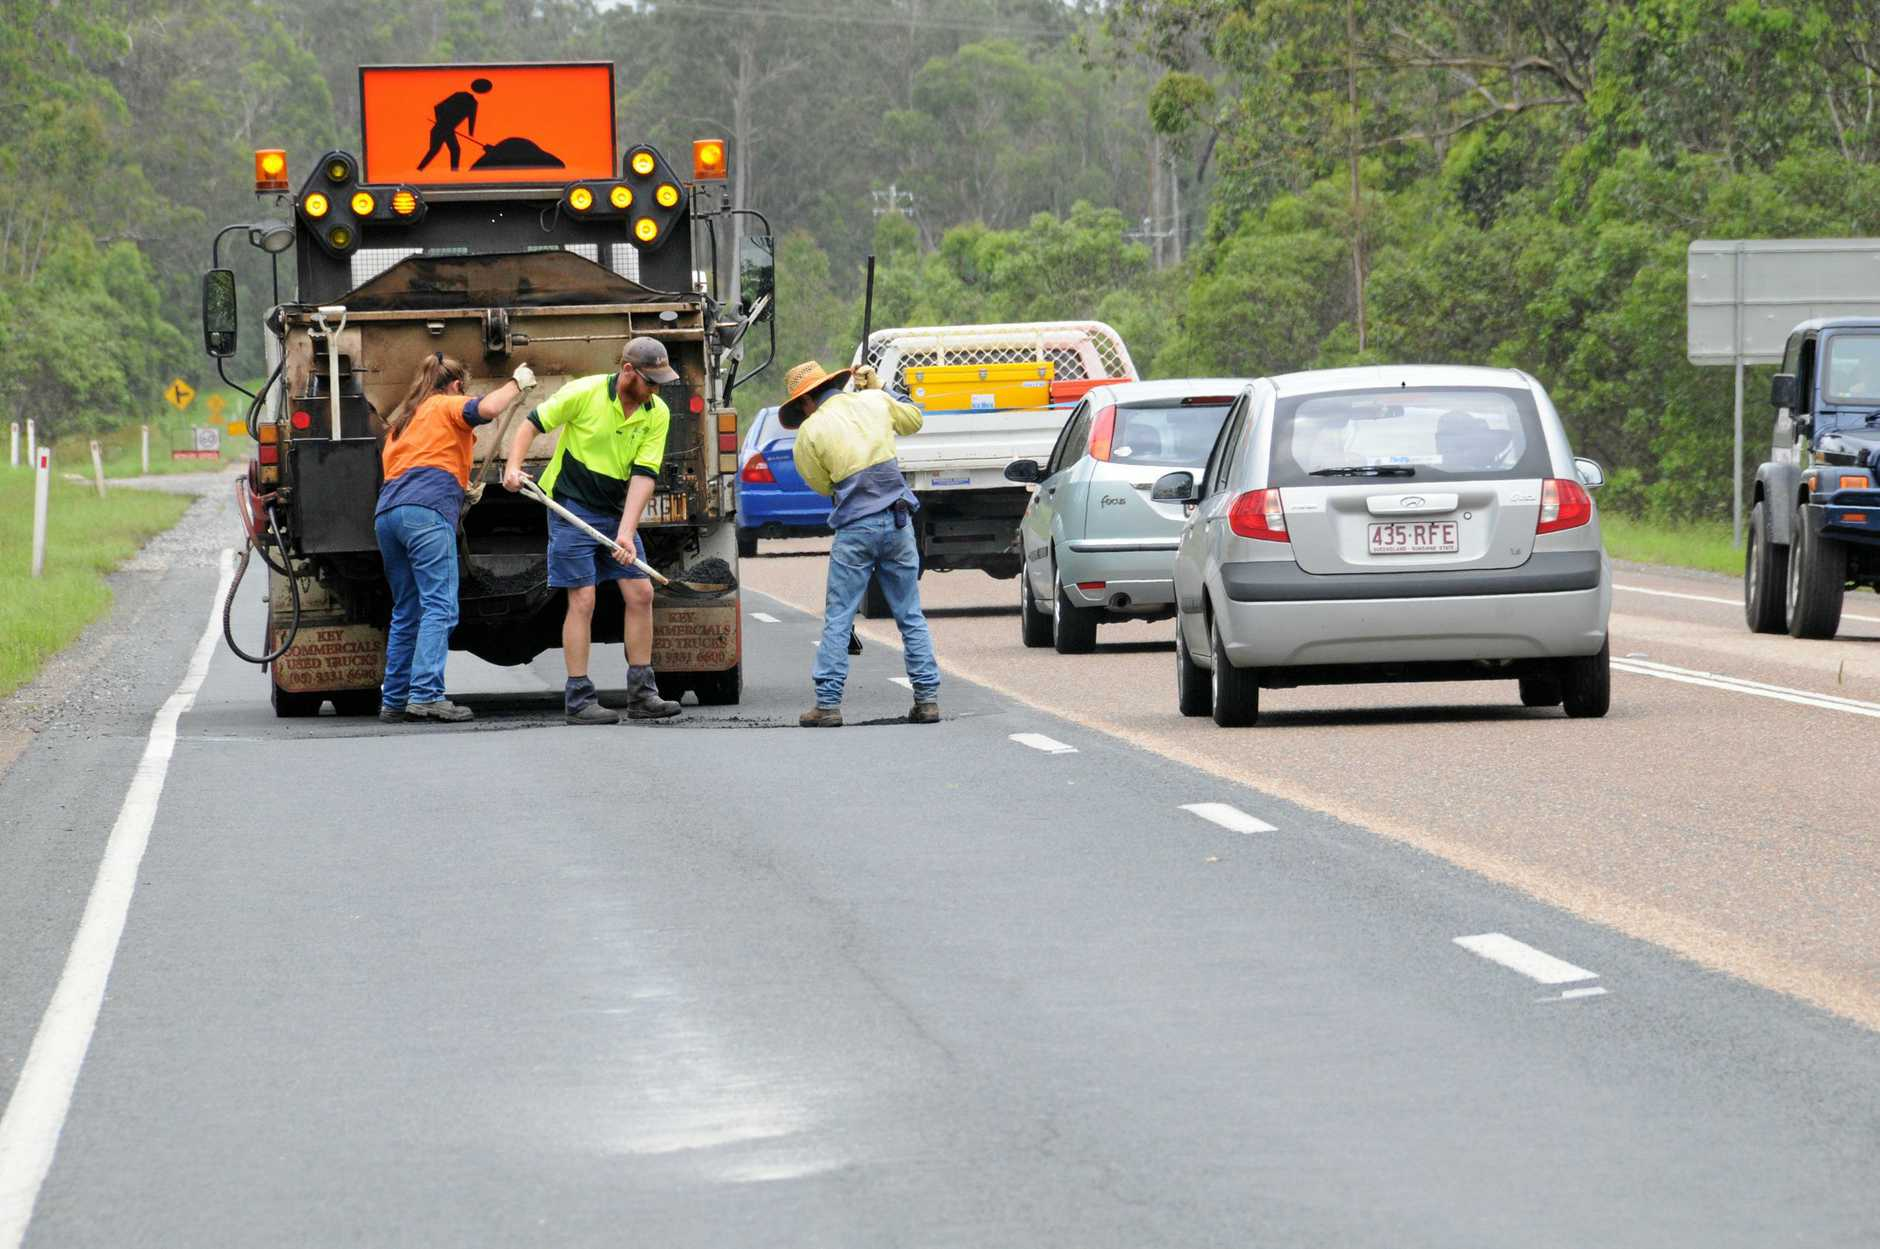 Council workers fixing highway Curra. Photo: Renee Pilcher / The Gympie Times